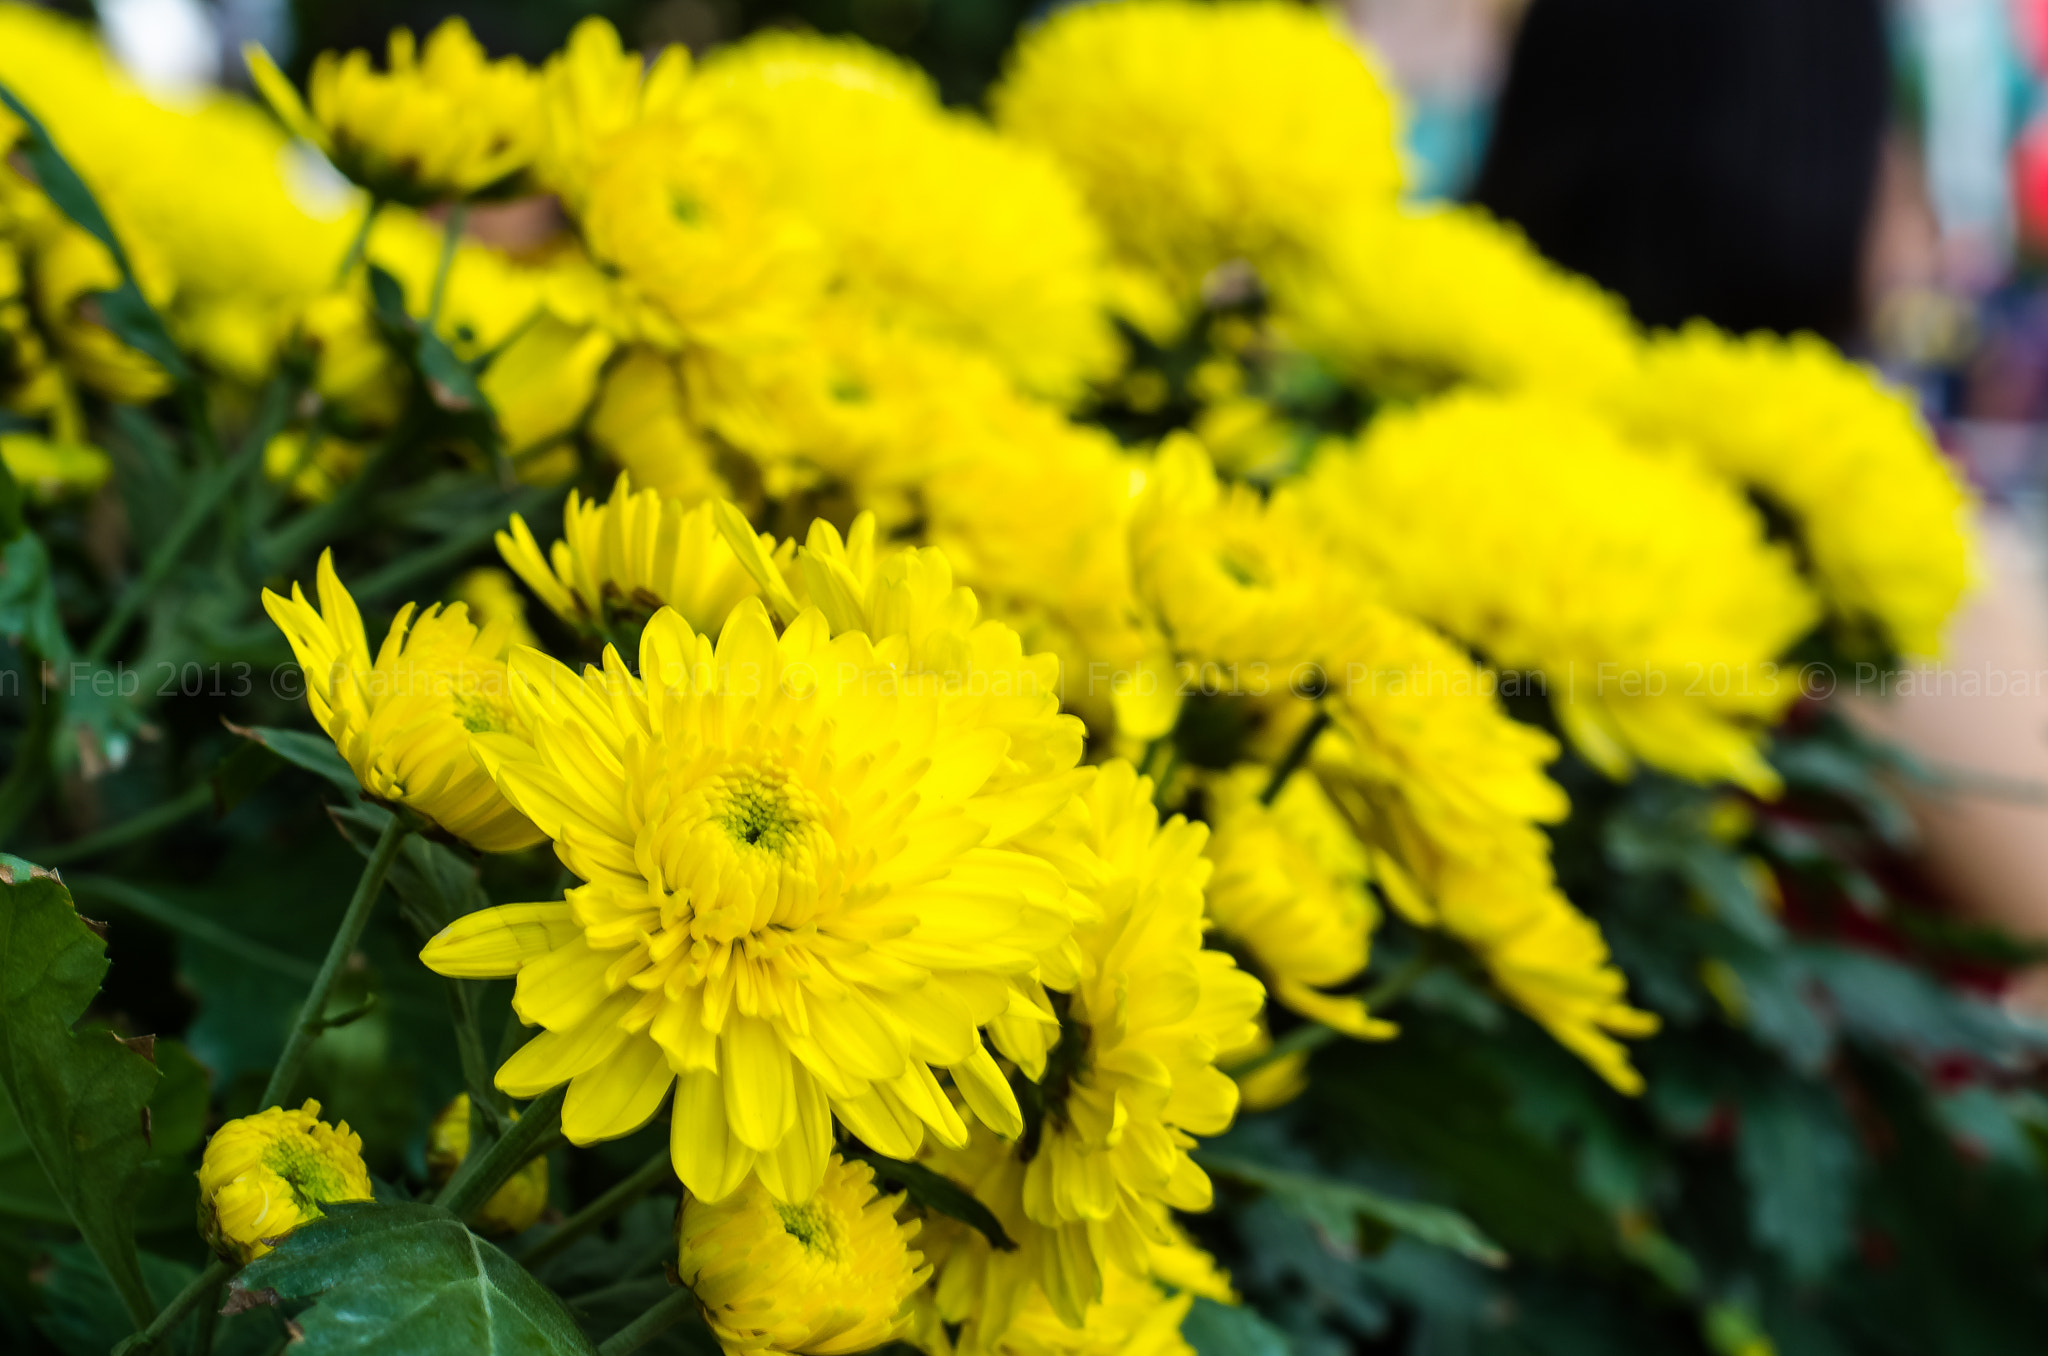 Photograph Yellow Flowers by Prathaban Umapathysarma on 500px